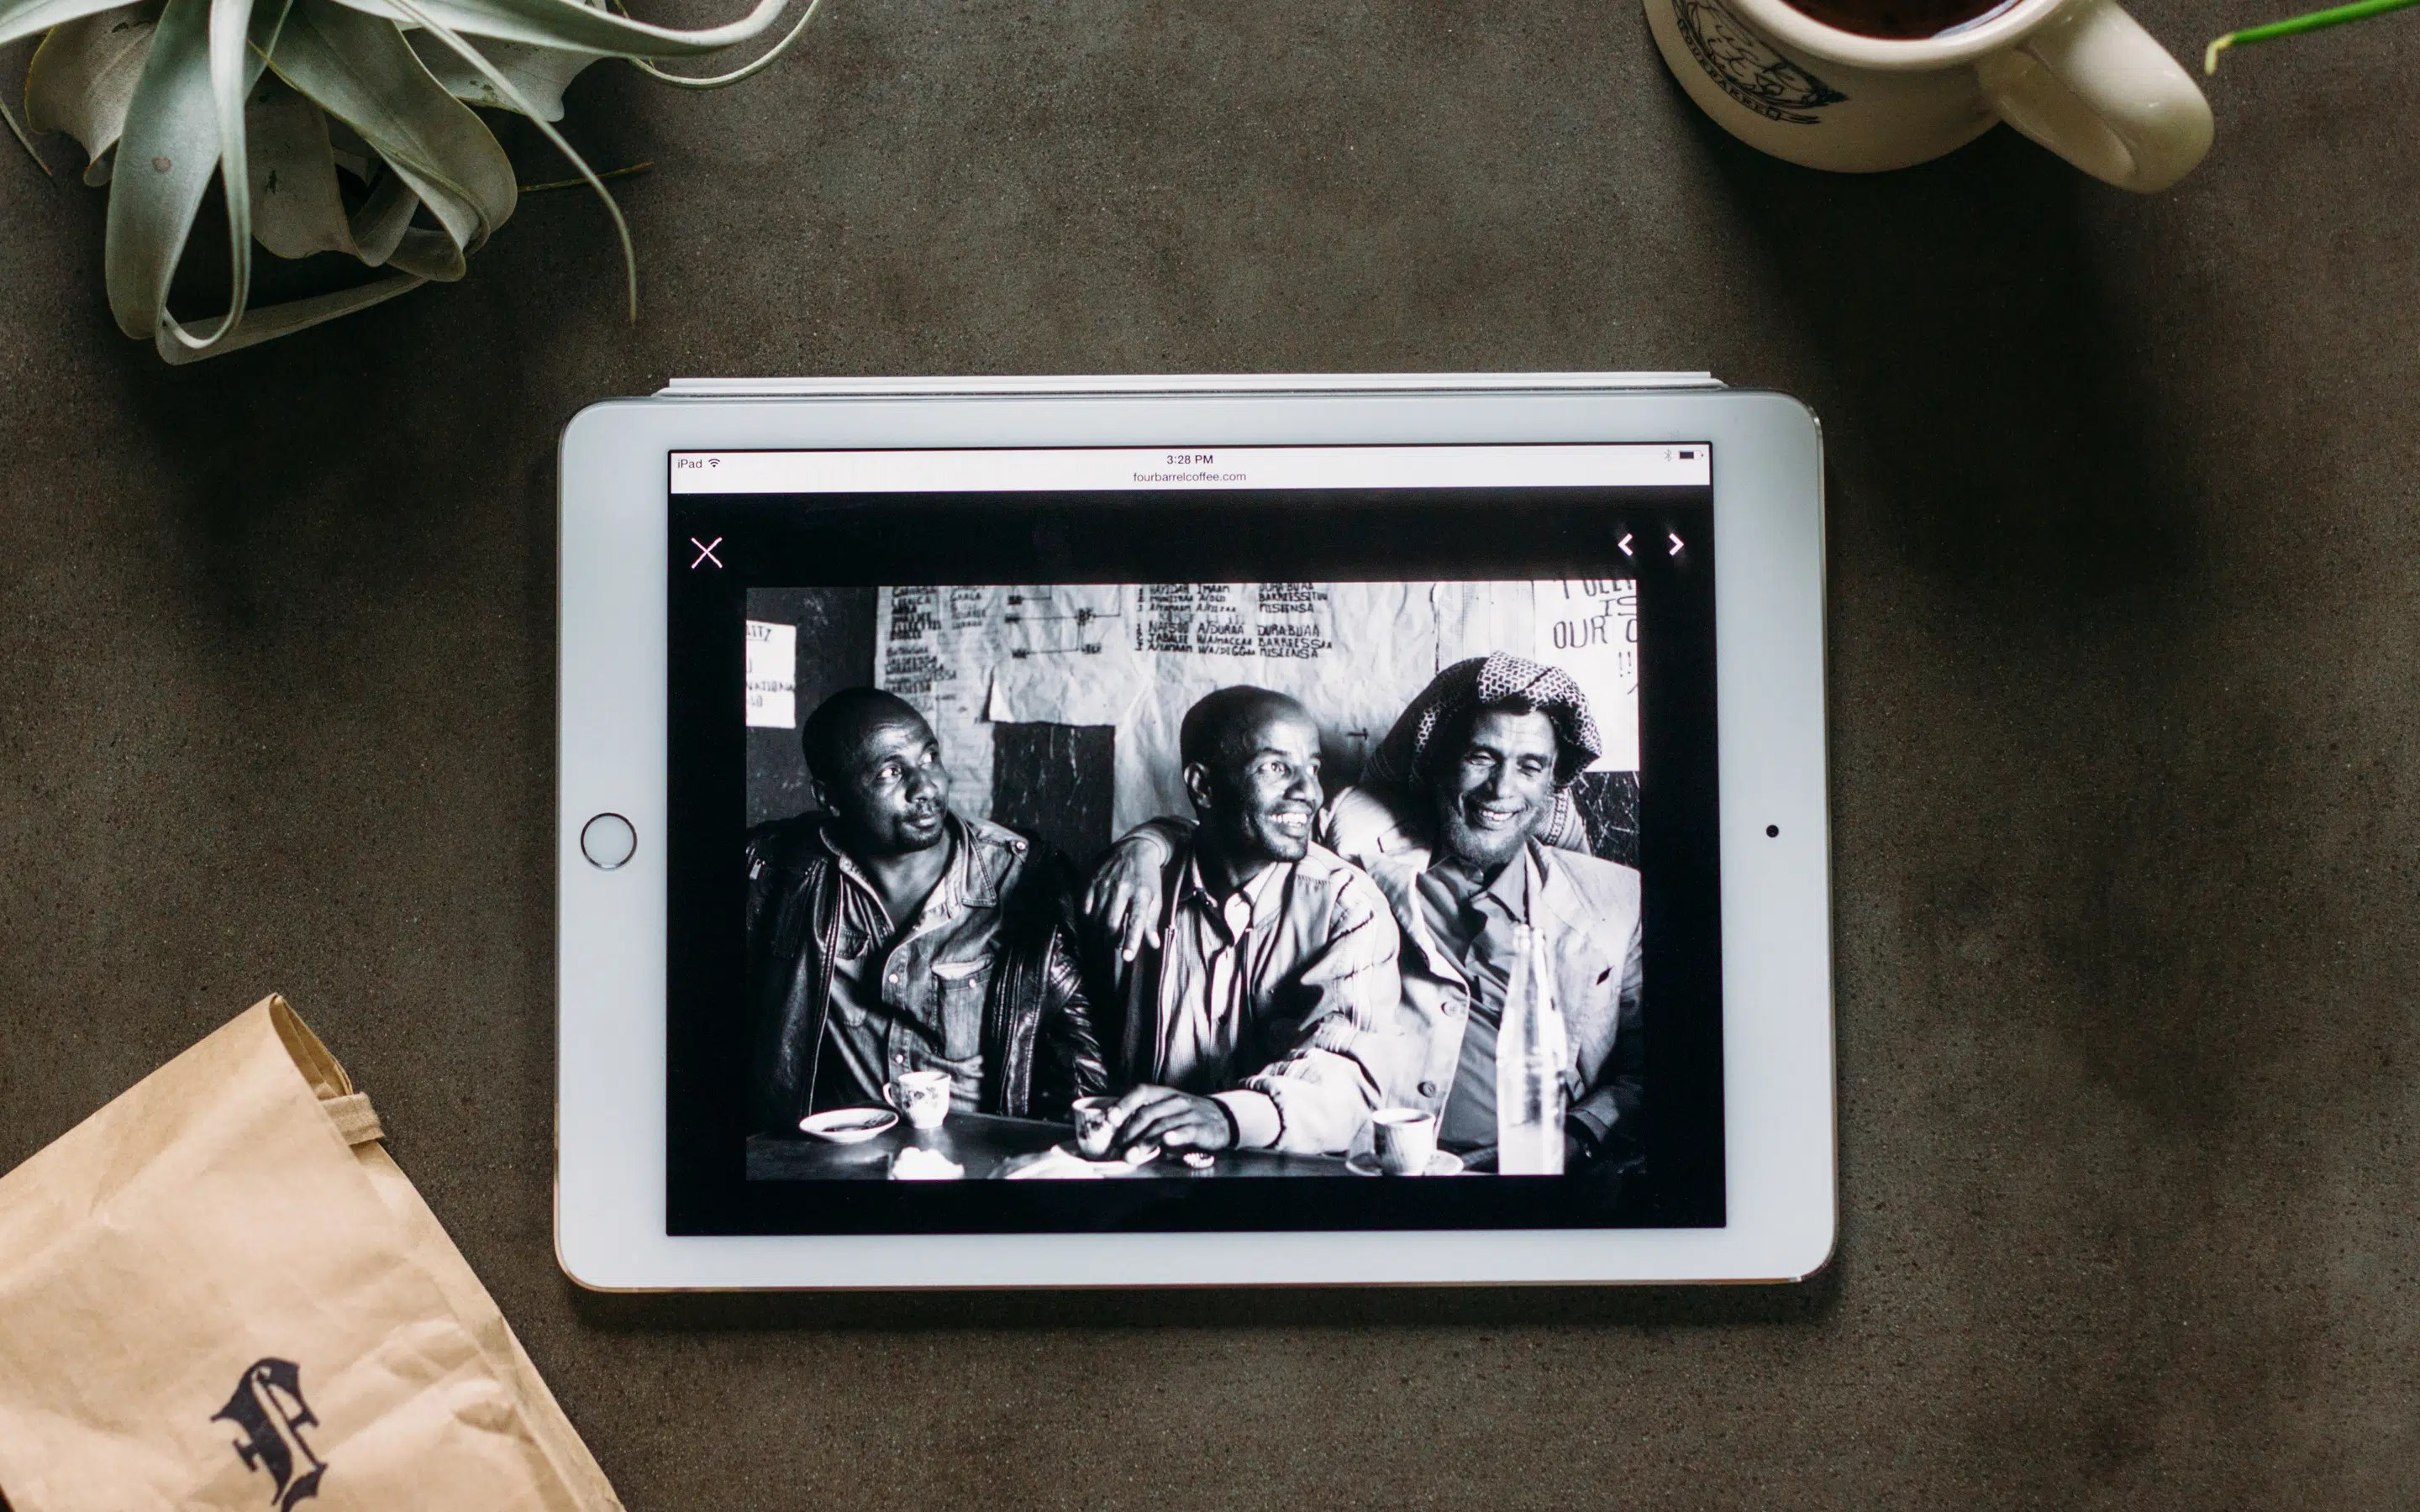 Four Barrel Coffee source photo showcases on their site, shown on iPad